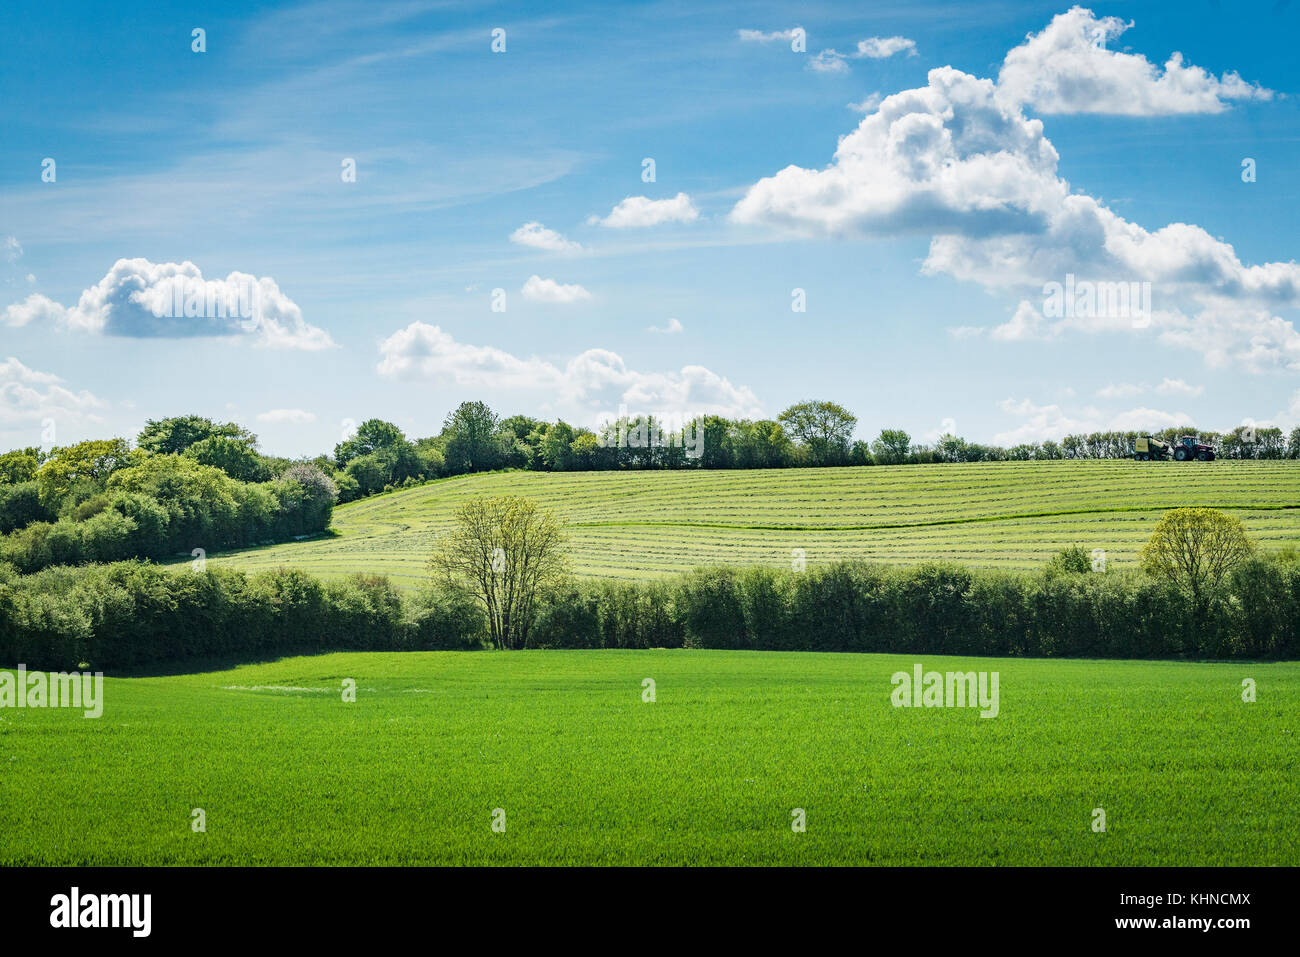 Rural green fields in the spring with blooming trees with green leaves under a blue sky - Stock Image